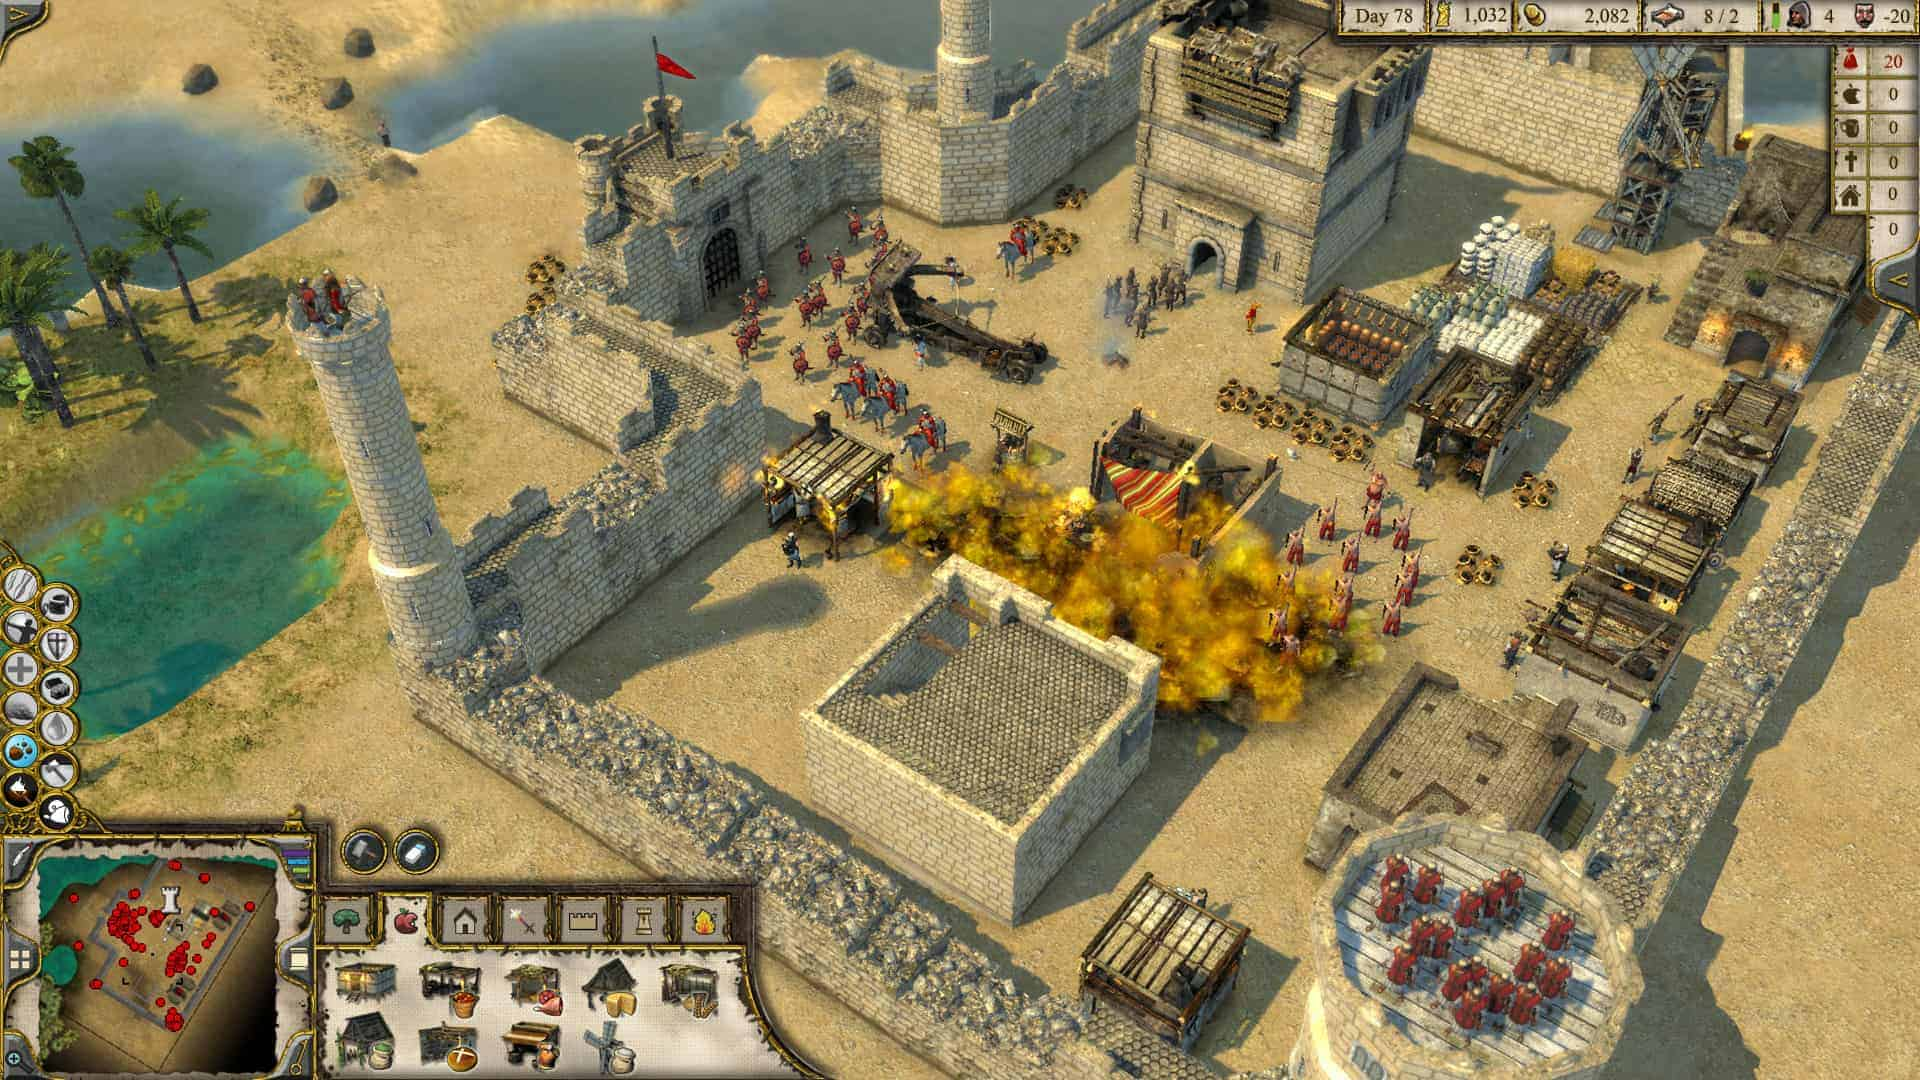 Download Game Pc Stronghold Crusader 2